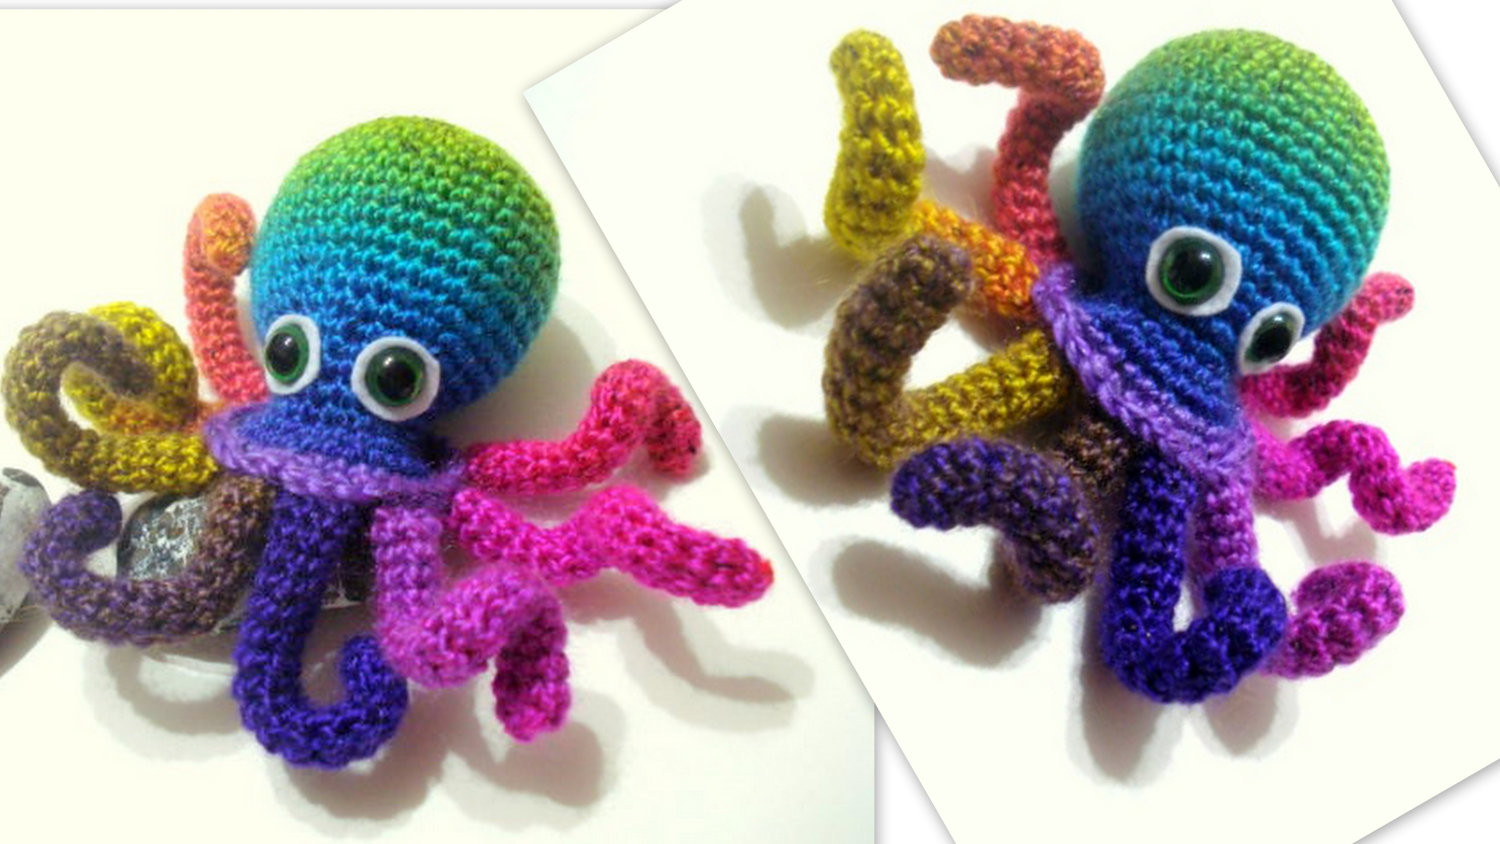 Crochet Octopus Pattern Awesome Crochet Tutorial Octopus Amigurumi Crocheted Octopus Of Amazing 50 Photos Crochet Octopus Pattern